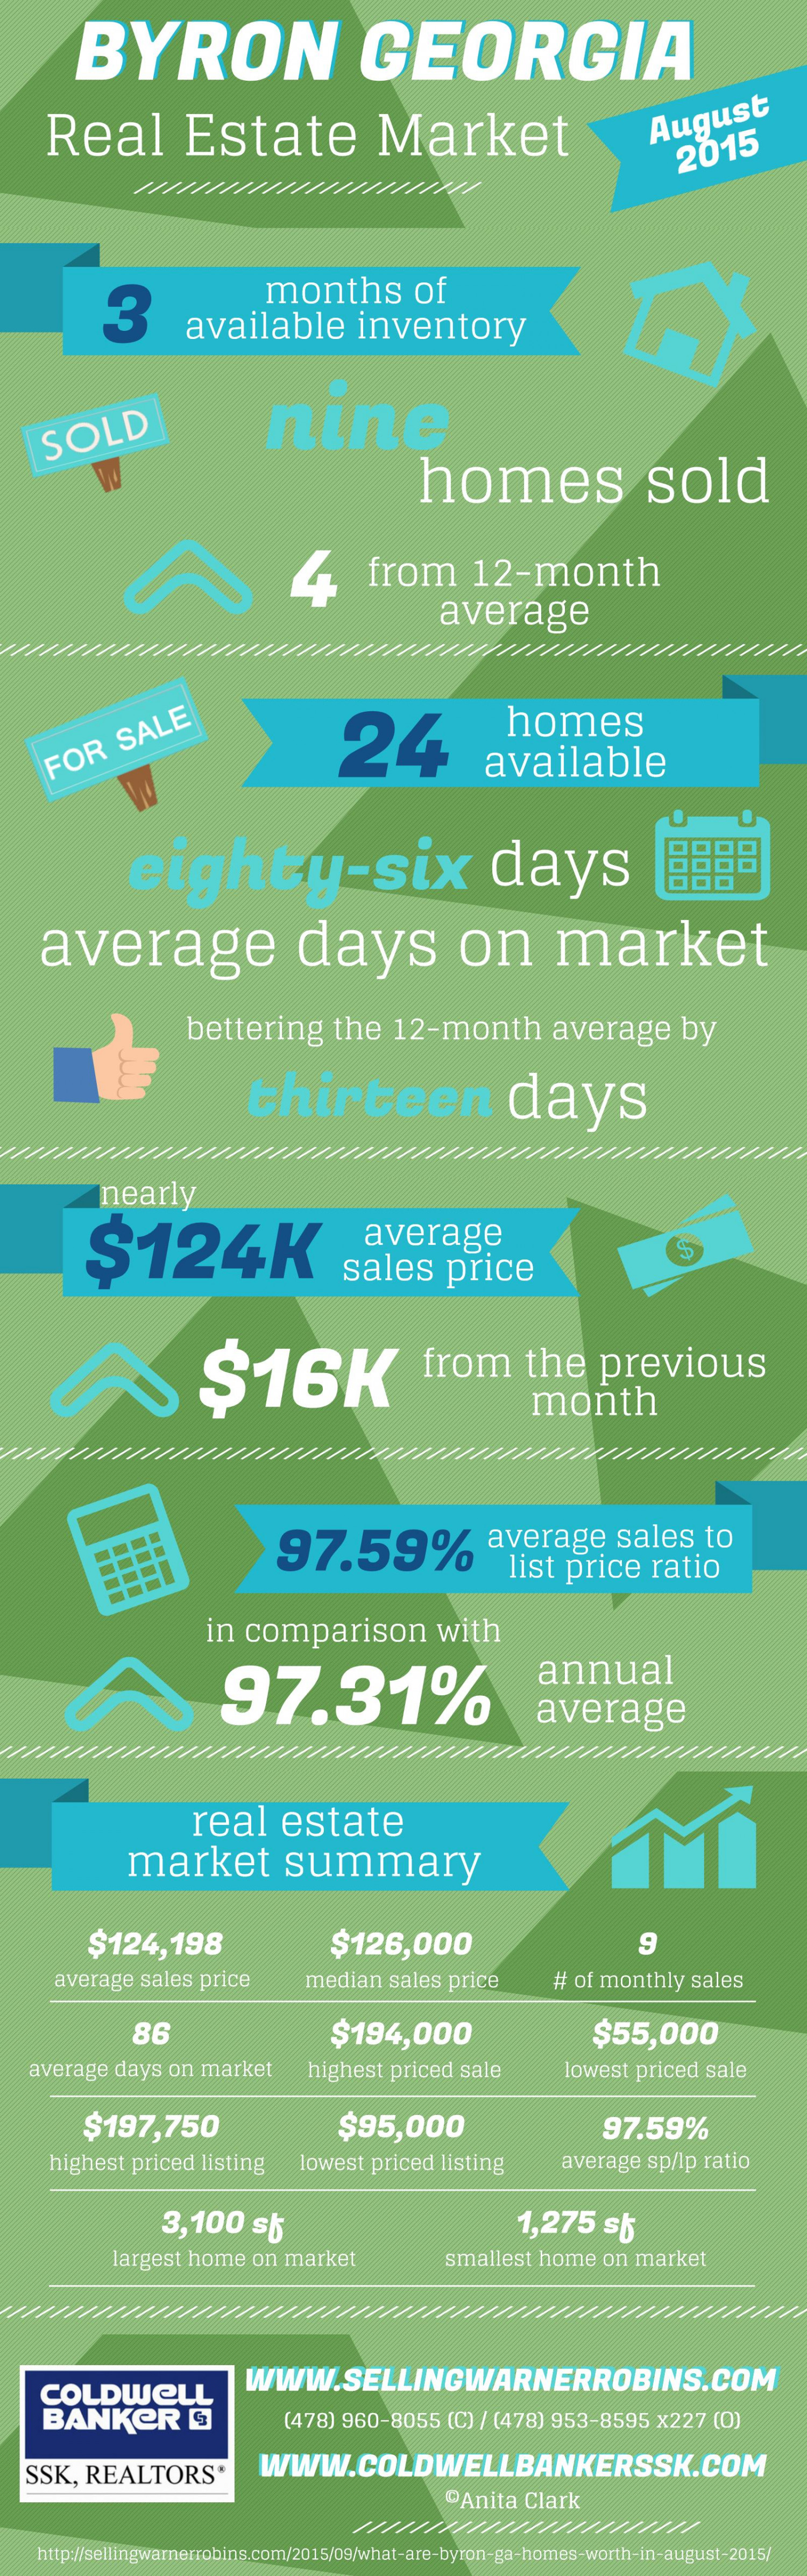 Byron GA Real Estate Market in August 2015 Infographic